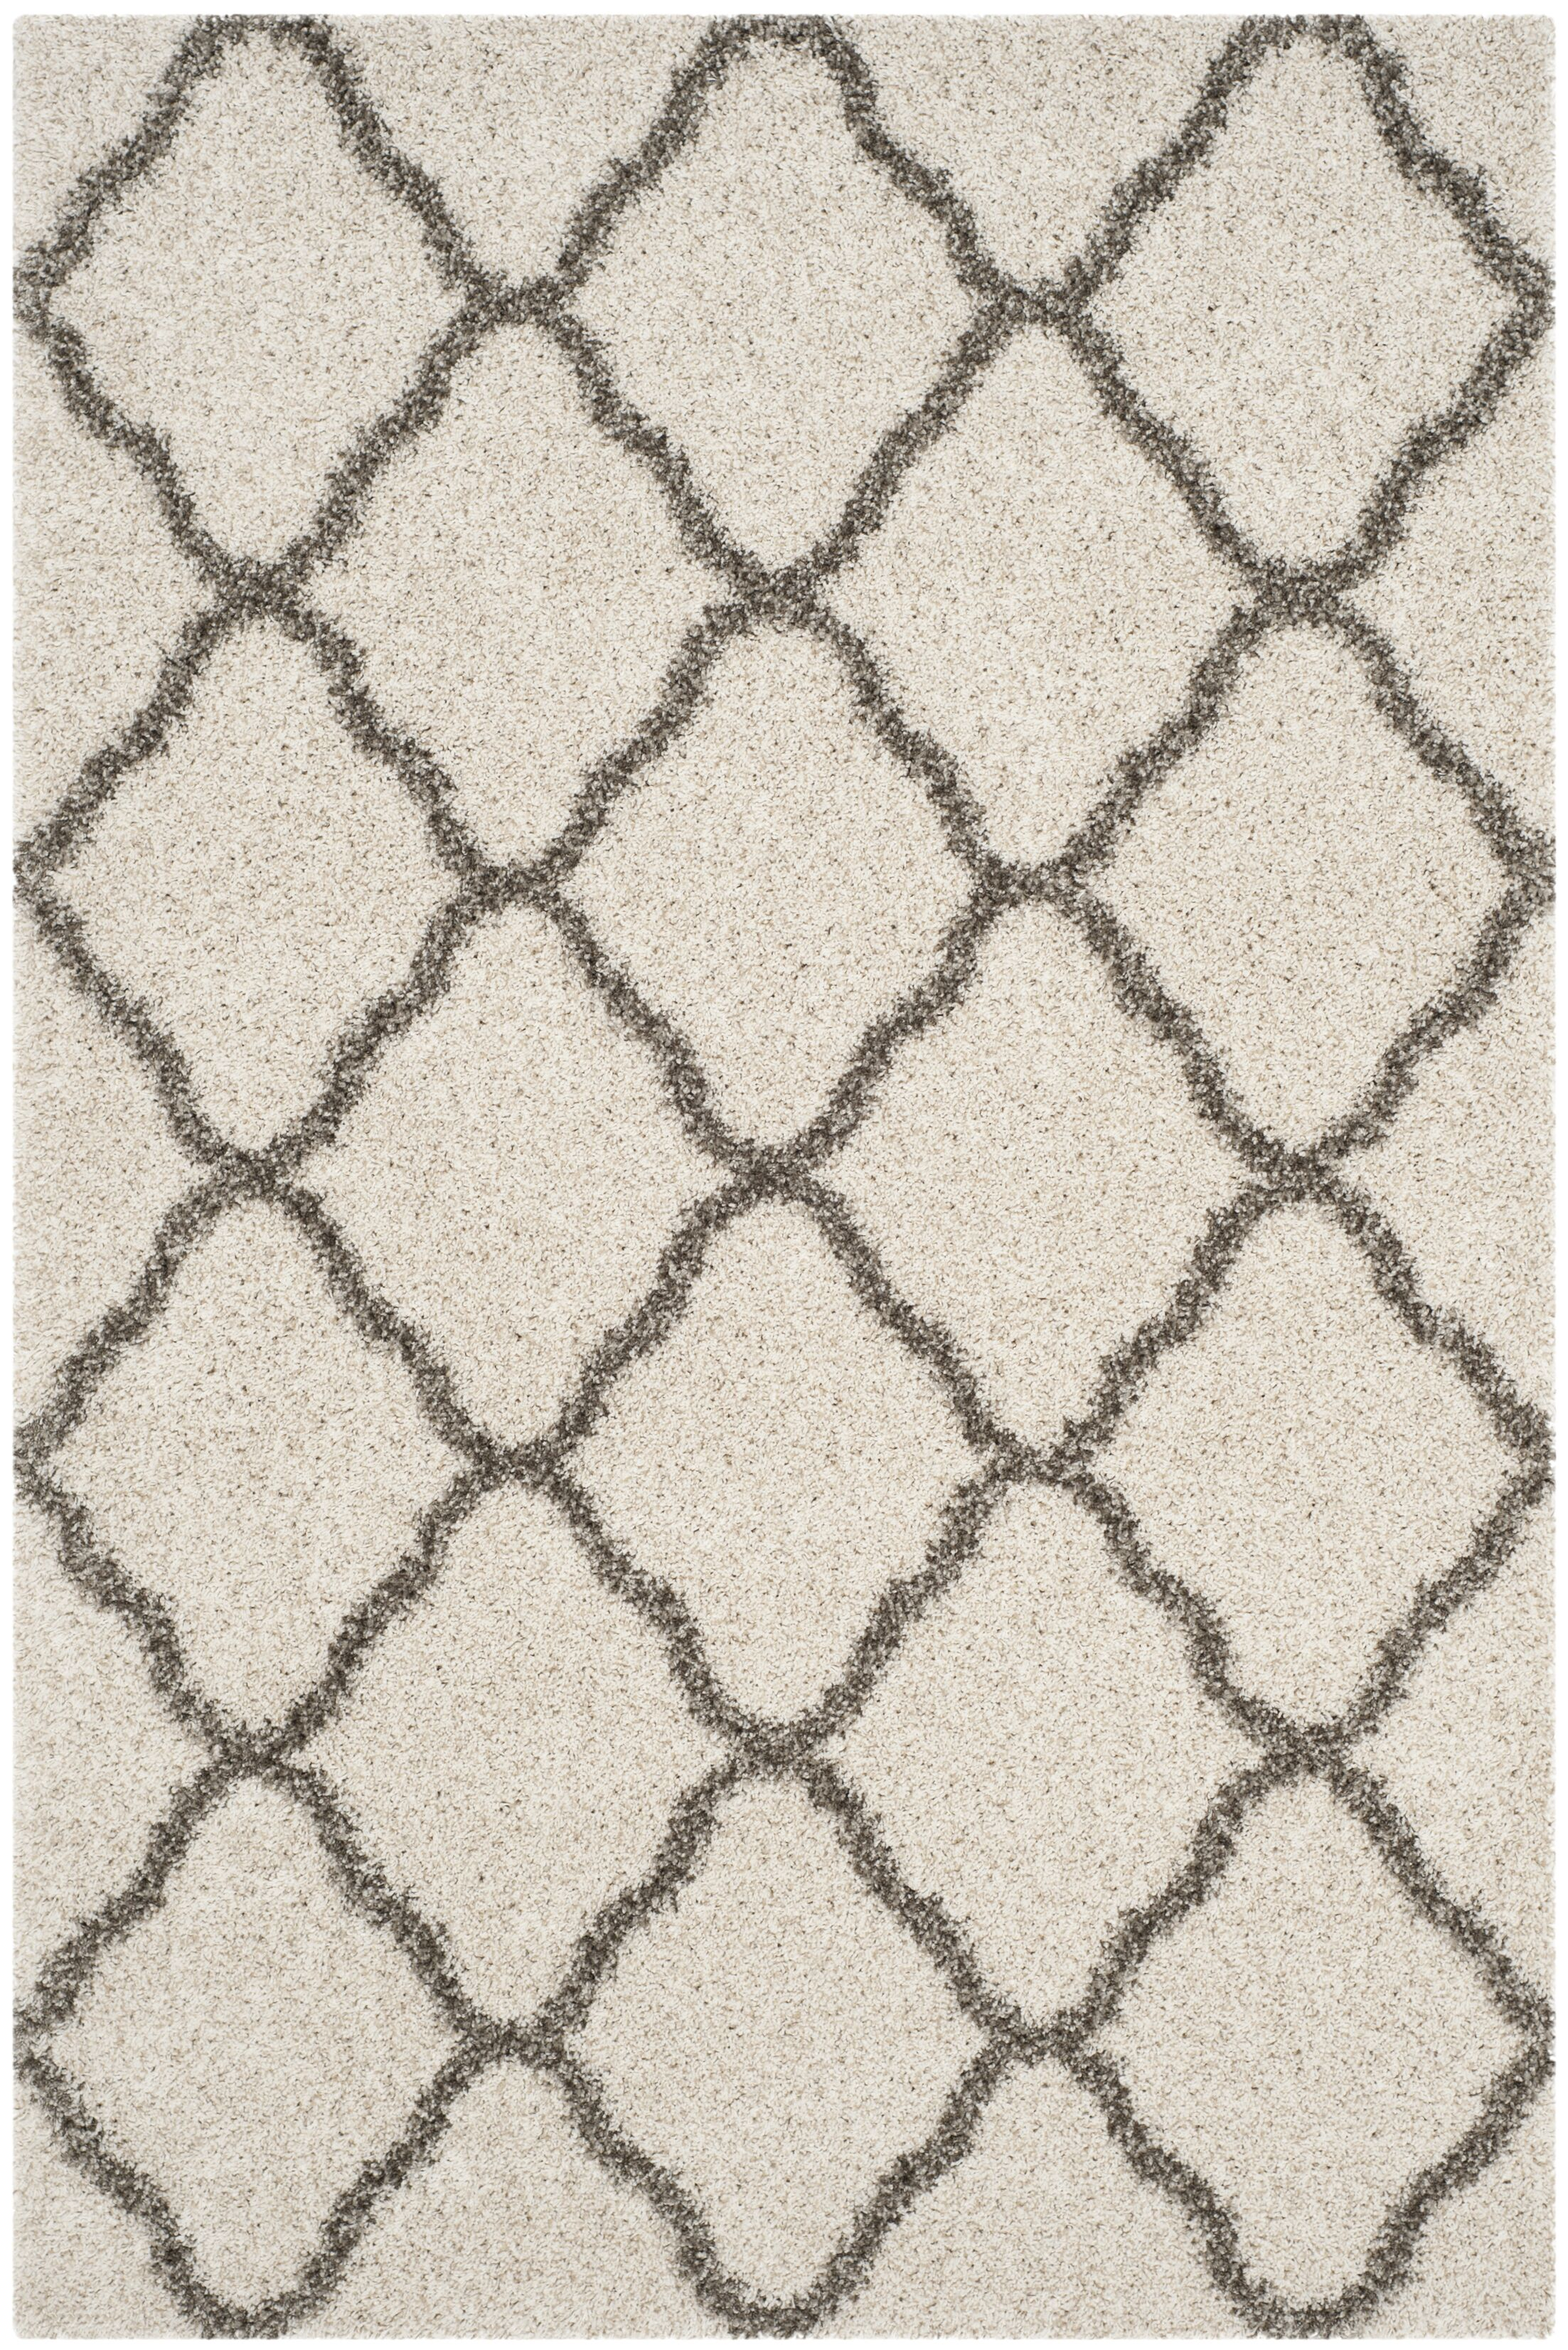 Buford Ivory/Gray Area Rug Rug Size: Rectangle 4' x 6'